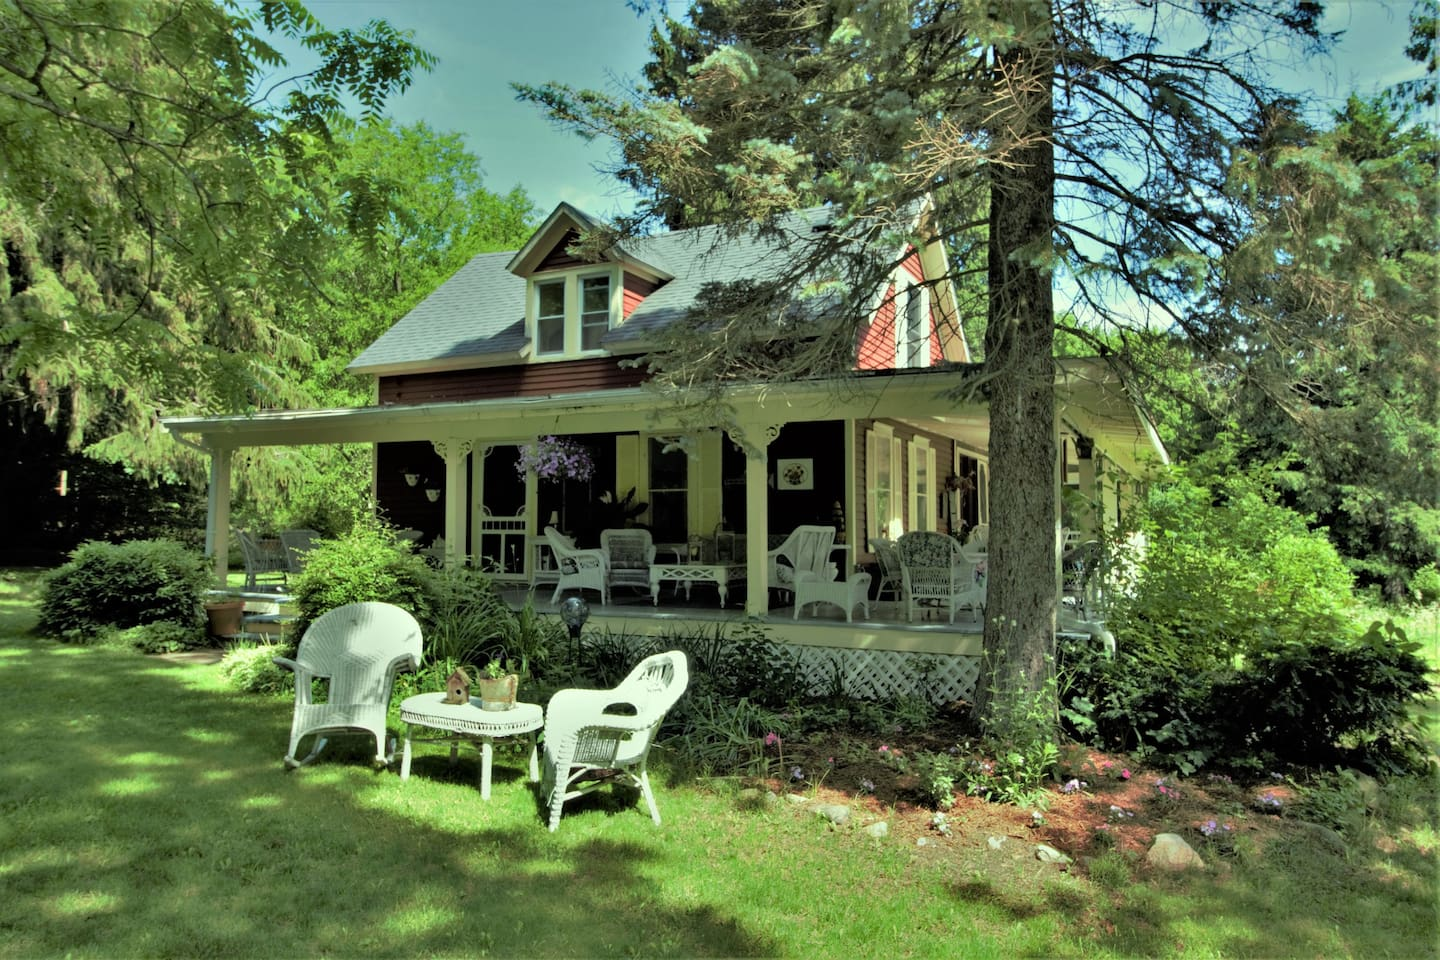 Welcome to my 1861 House. Relax on the  wraparound porch and enjoy the peacefulness of country living.